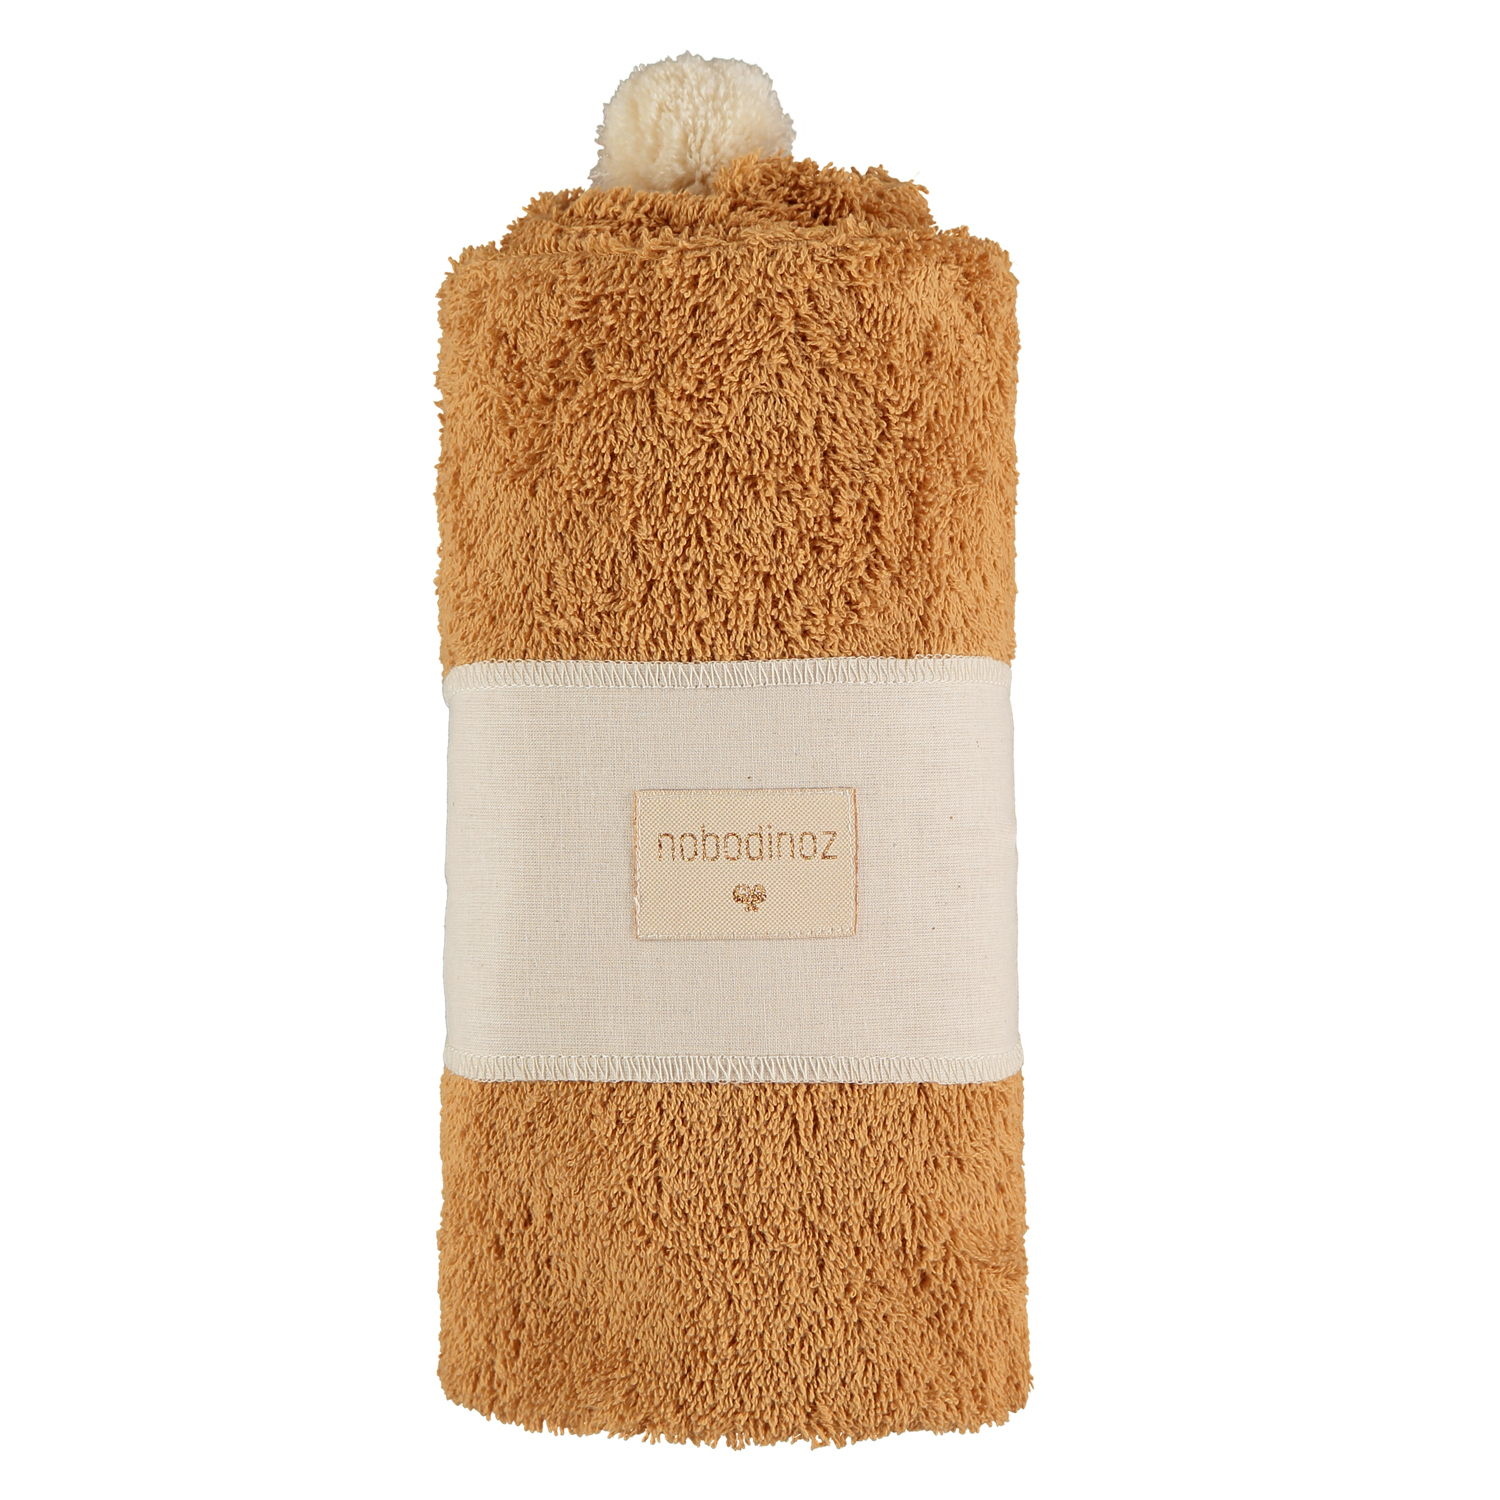 So Cute baby bath cape 73x73 | Caramel